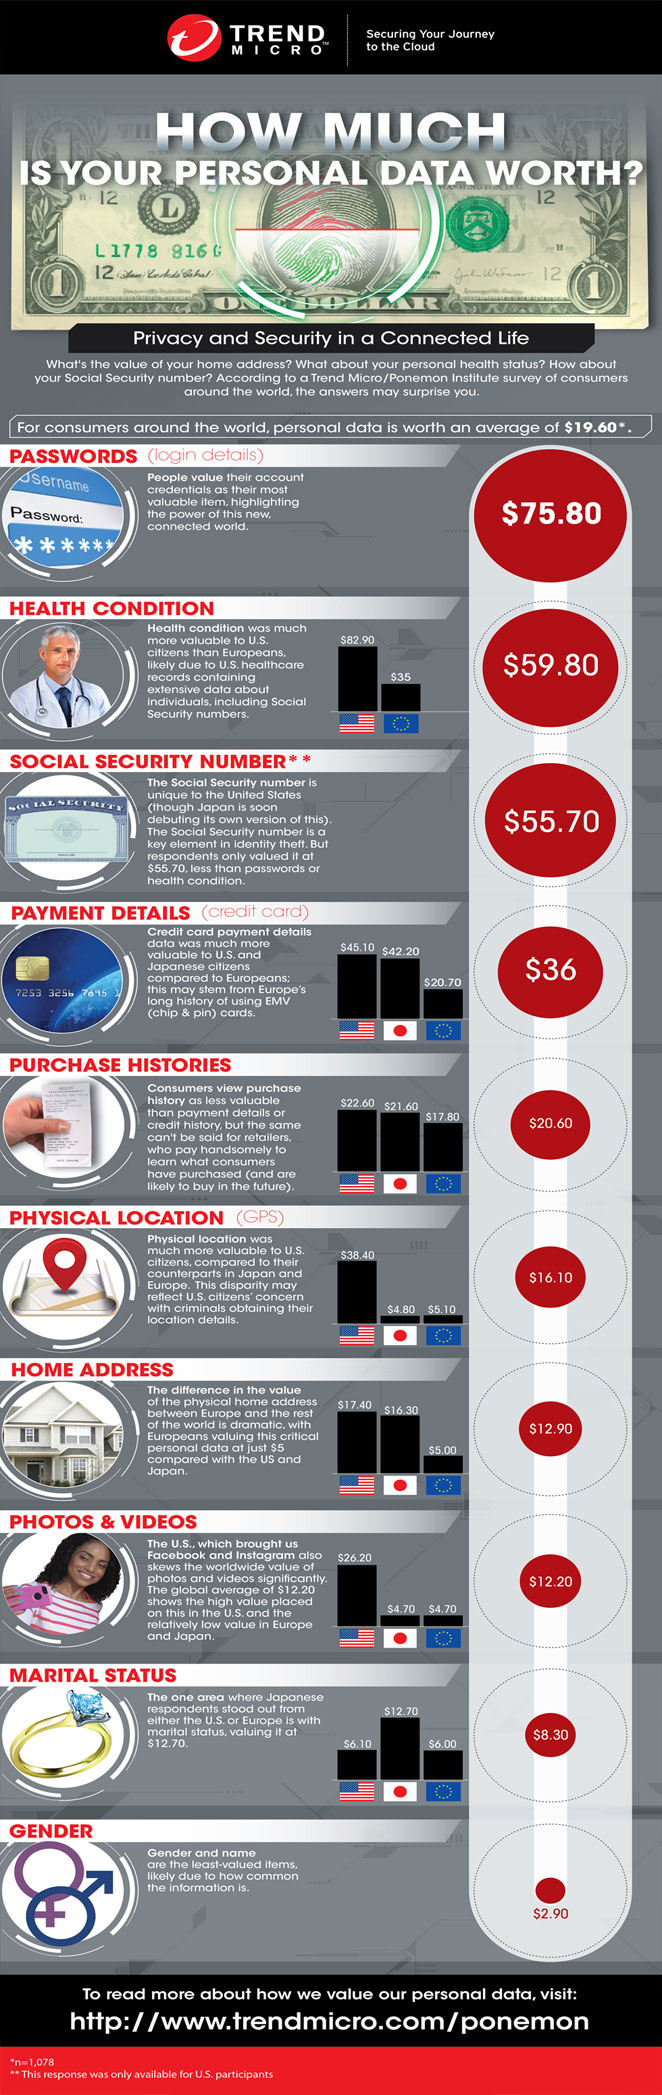 infographic-how-much-is-your-data-worth-en